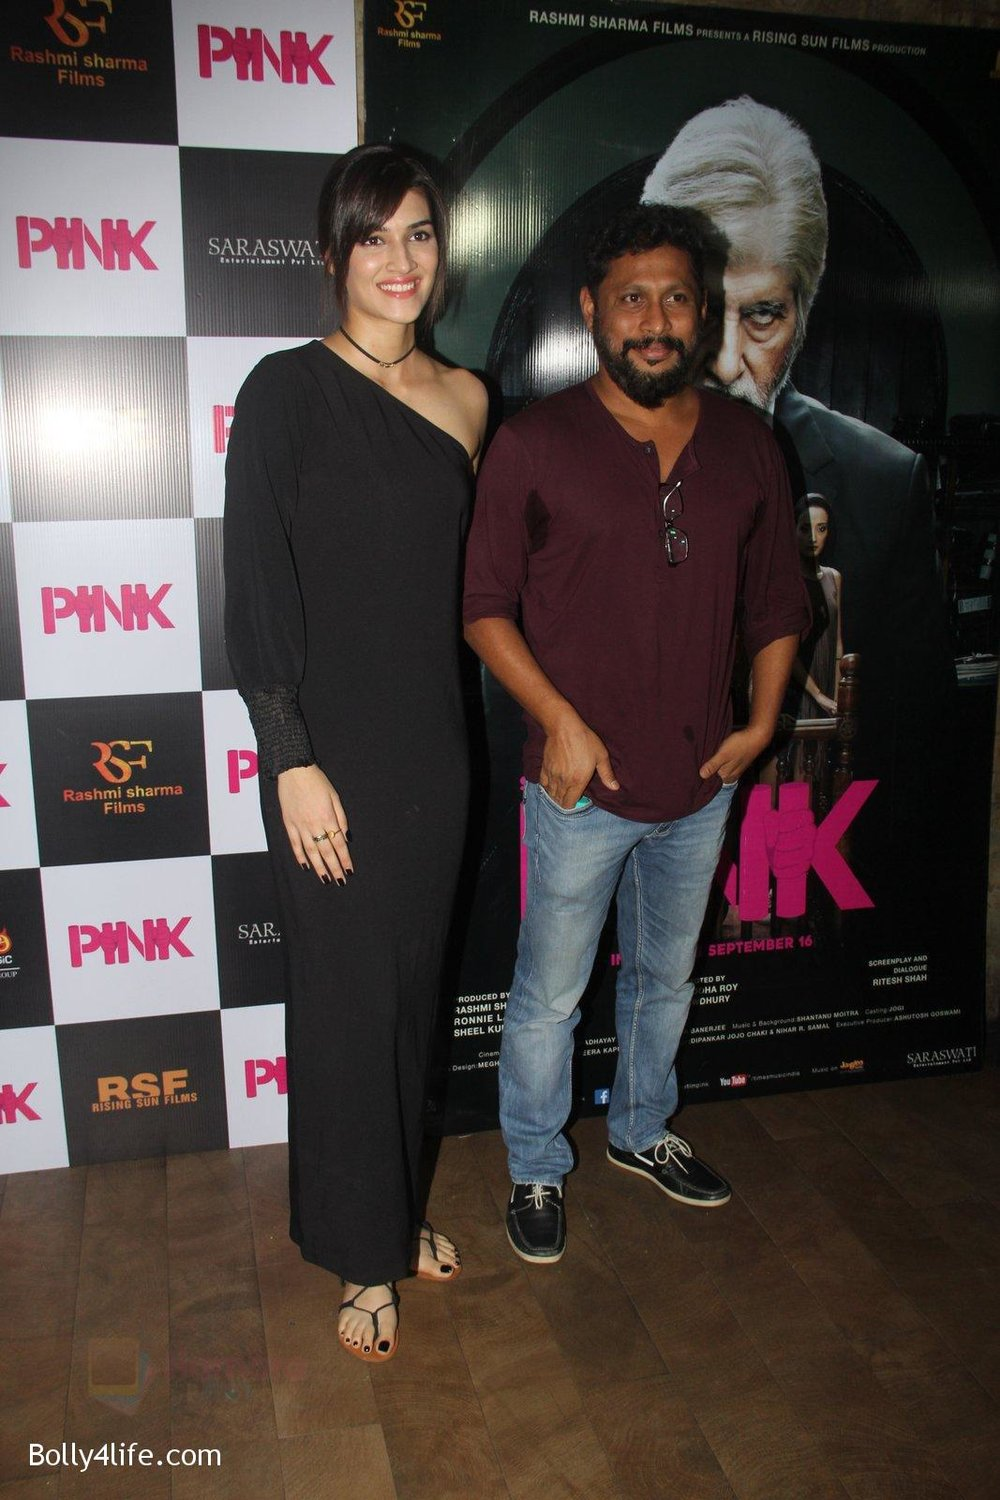 Kriti-Sanon-at-Pink-Screening-in-Lightbox-on-12th-Sept-2016-95.jpg